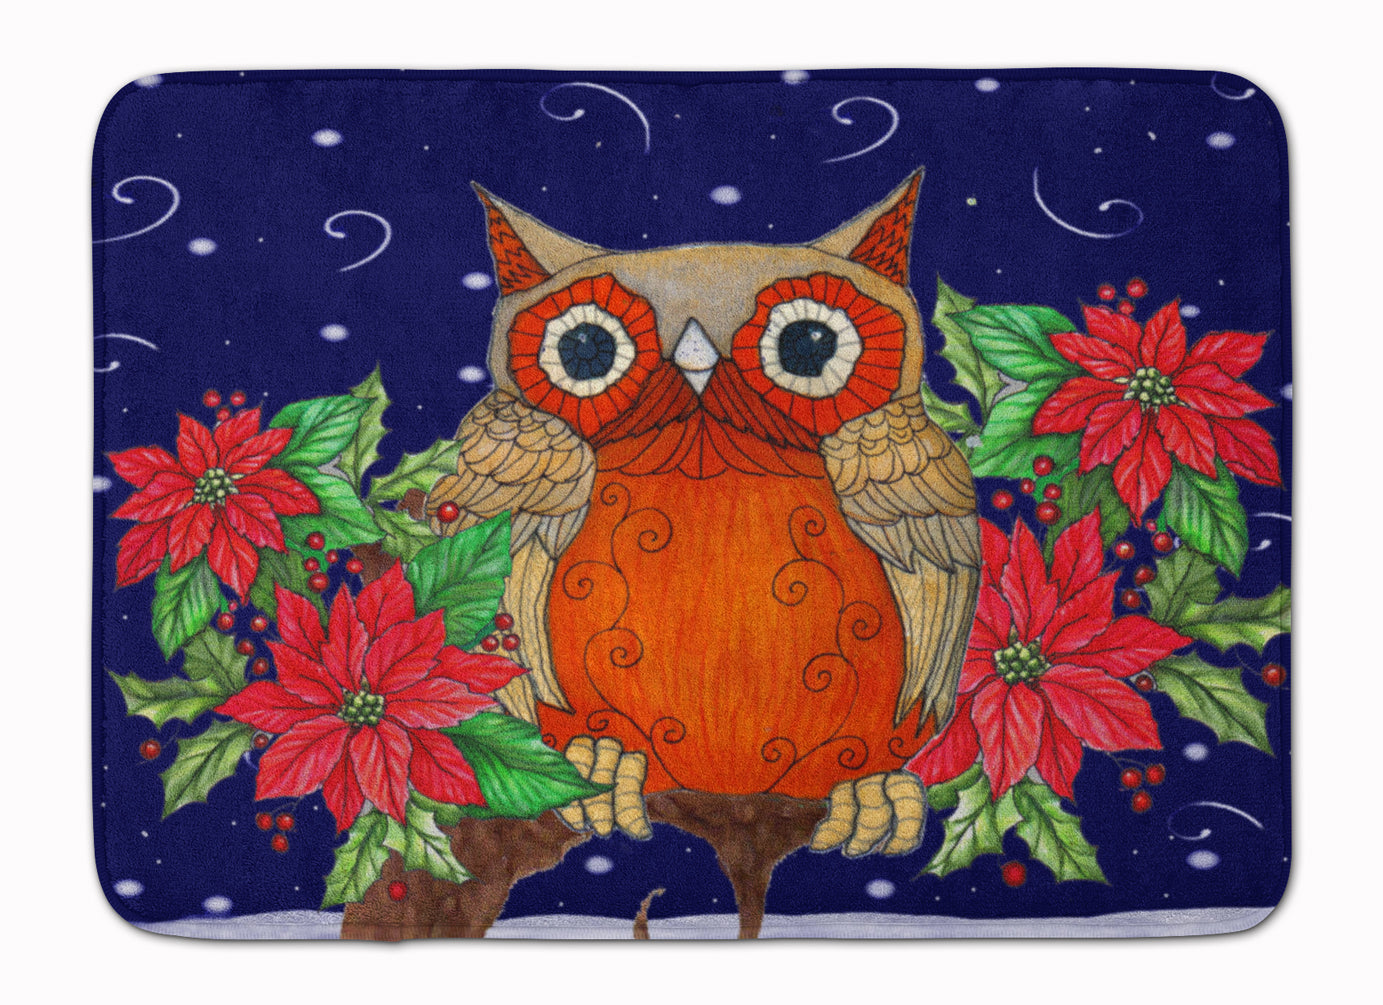 Whose Happy Holidays Owl Machine Washable Memory Foam Mat PJC1097RUG by Caroline's Treasures